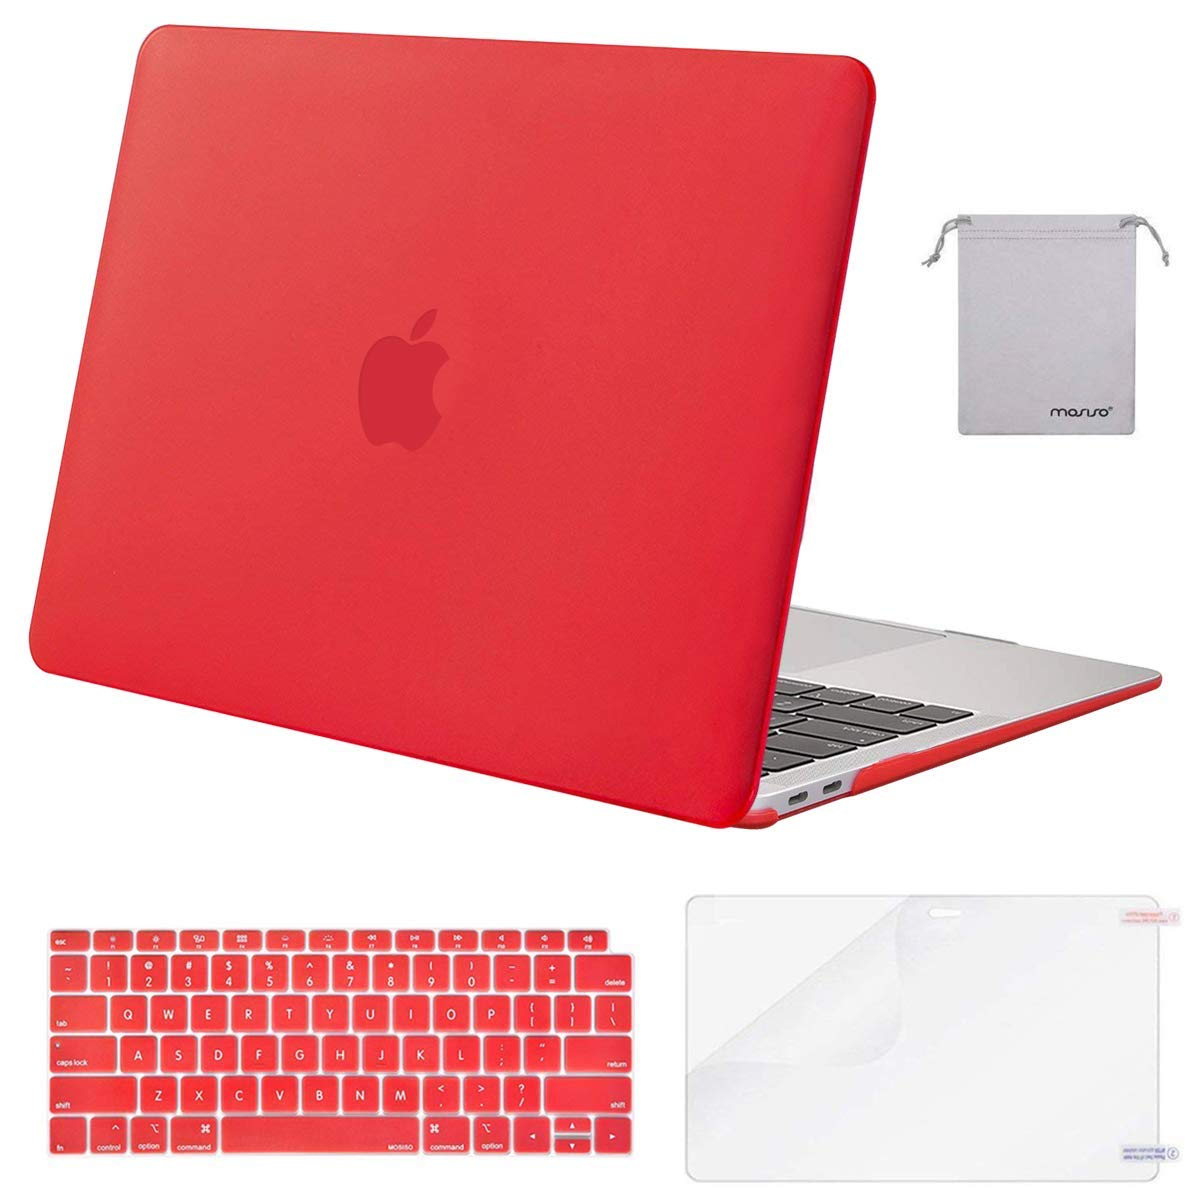 MOSISO MacBook Air 13 inch Case 2020 2019 2018 Release A2179 A1932 with Retina Display, Plastic Hard Shell&Keyboard Cover&Screen Protector&Storage Bag Compatible with MacBook Air 13, Red